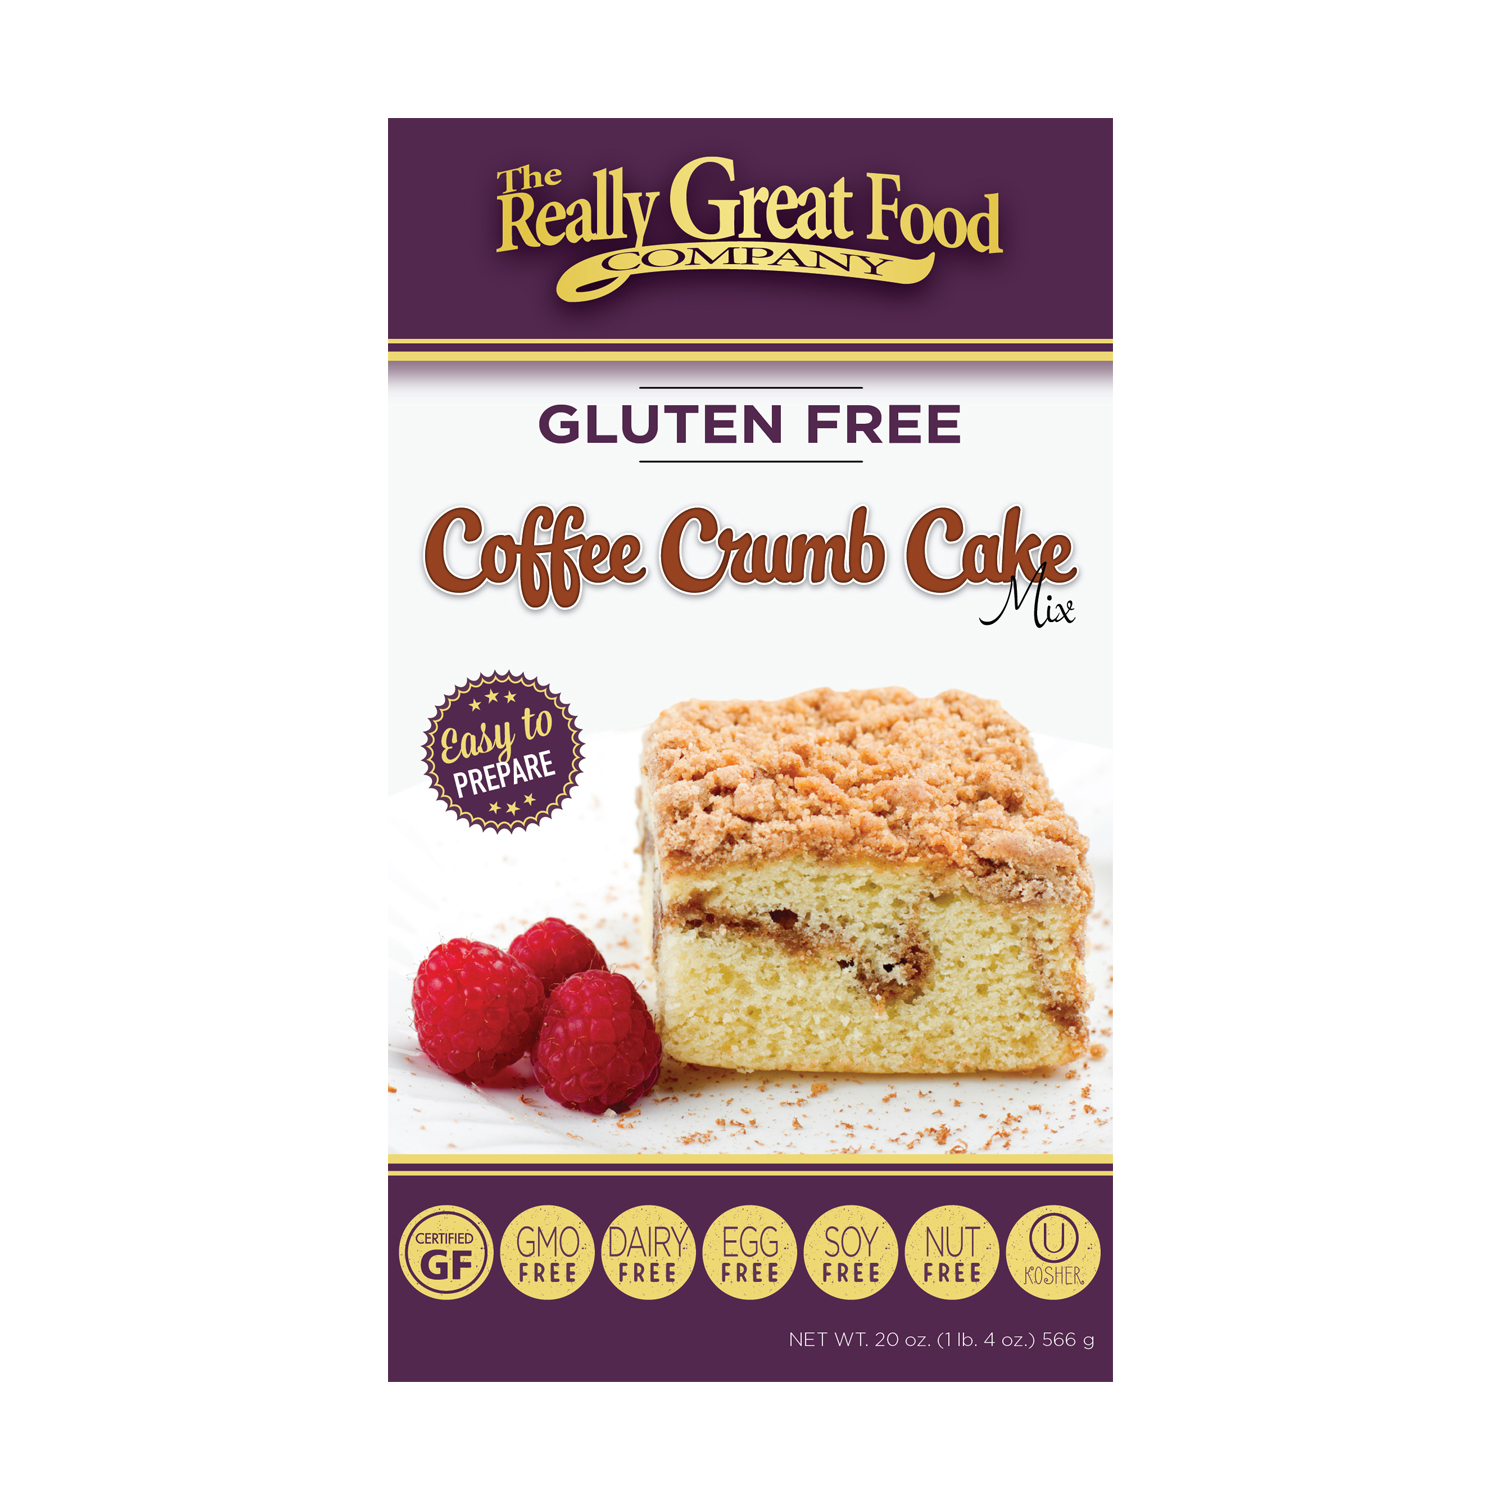 Gluten Free Coffee Cake Mix